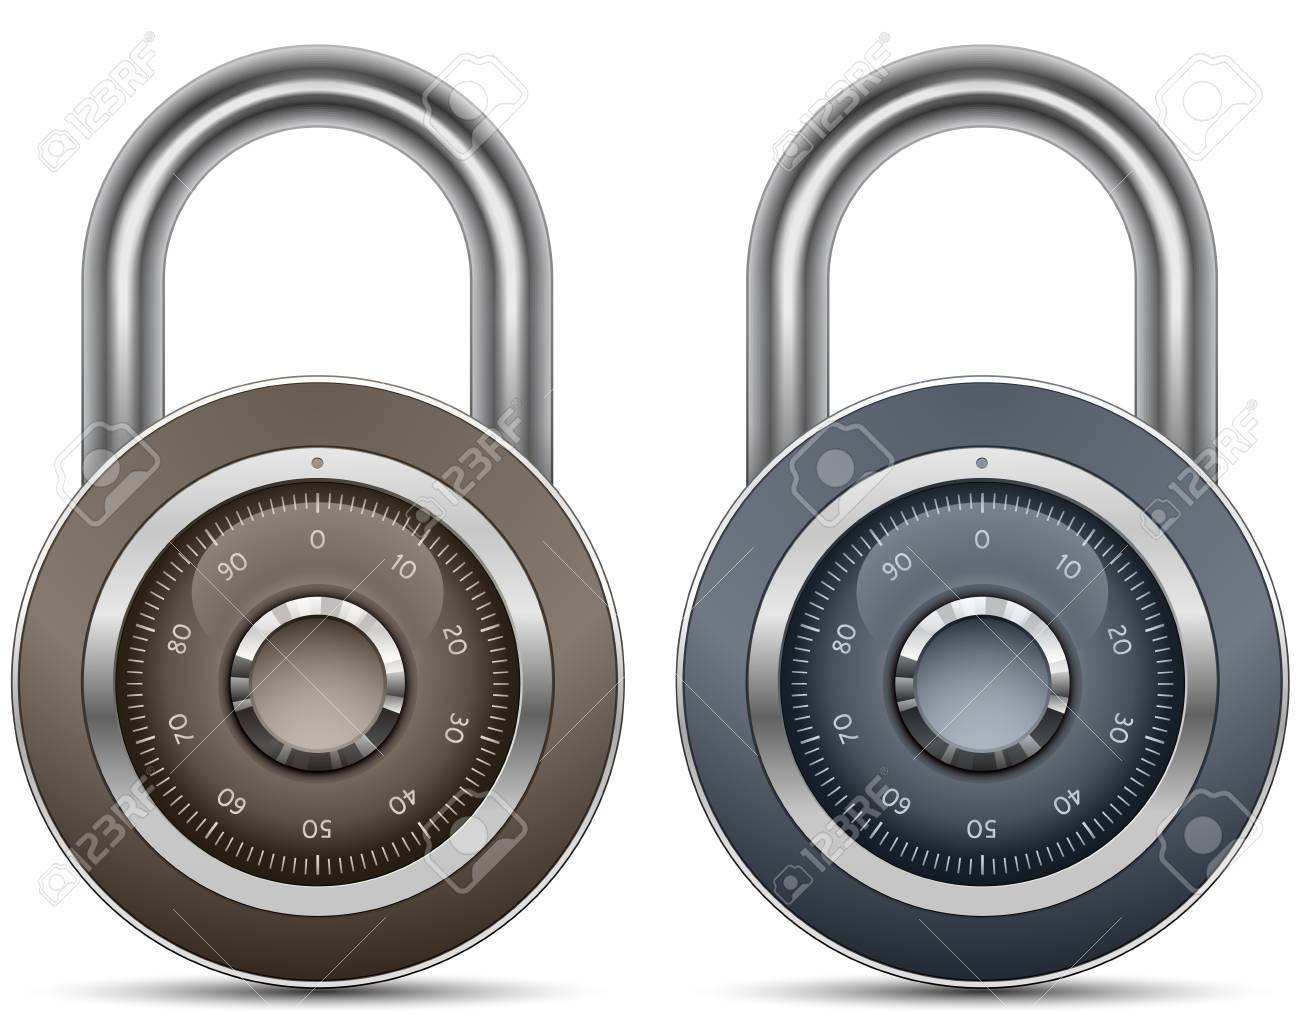 Combination Lock Collection. Security Concept.illustration of padlock Stock Vector - 9878229